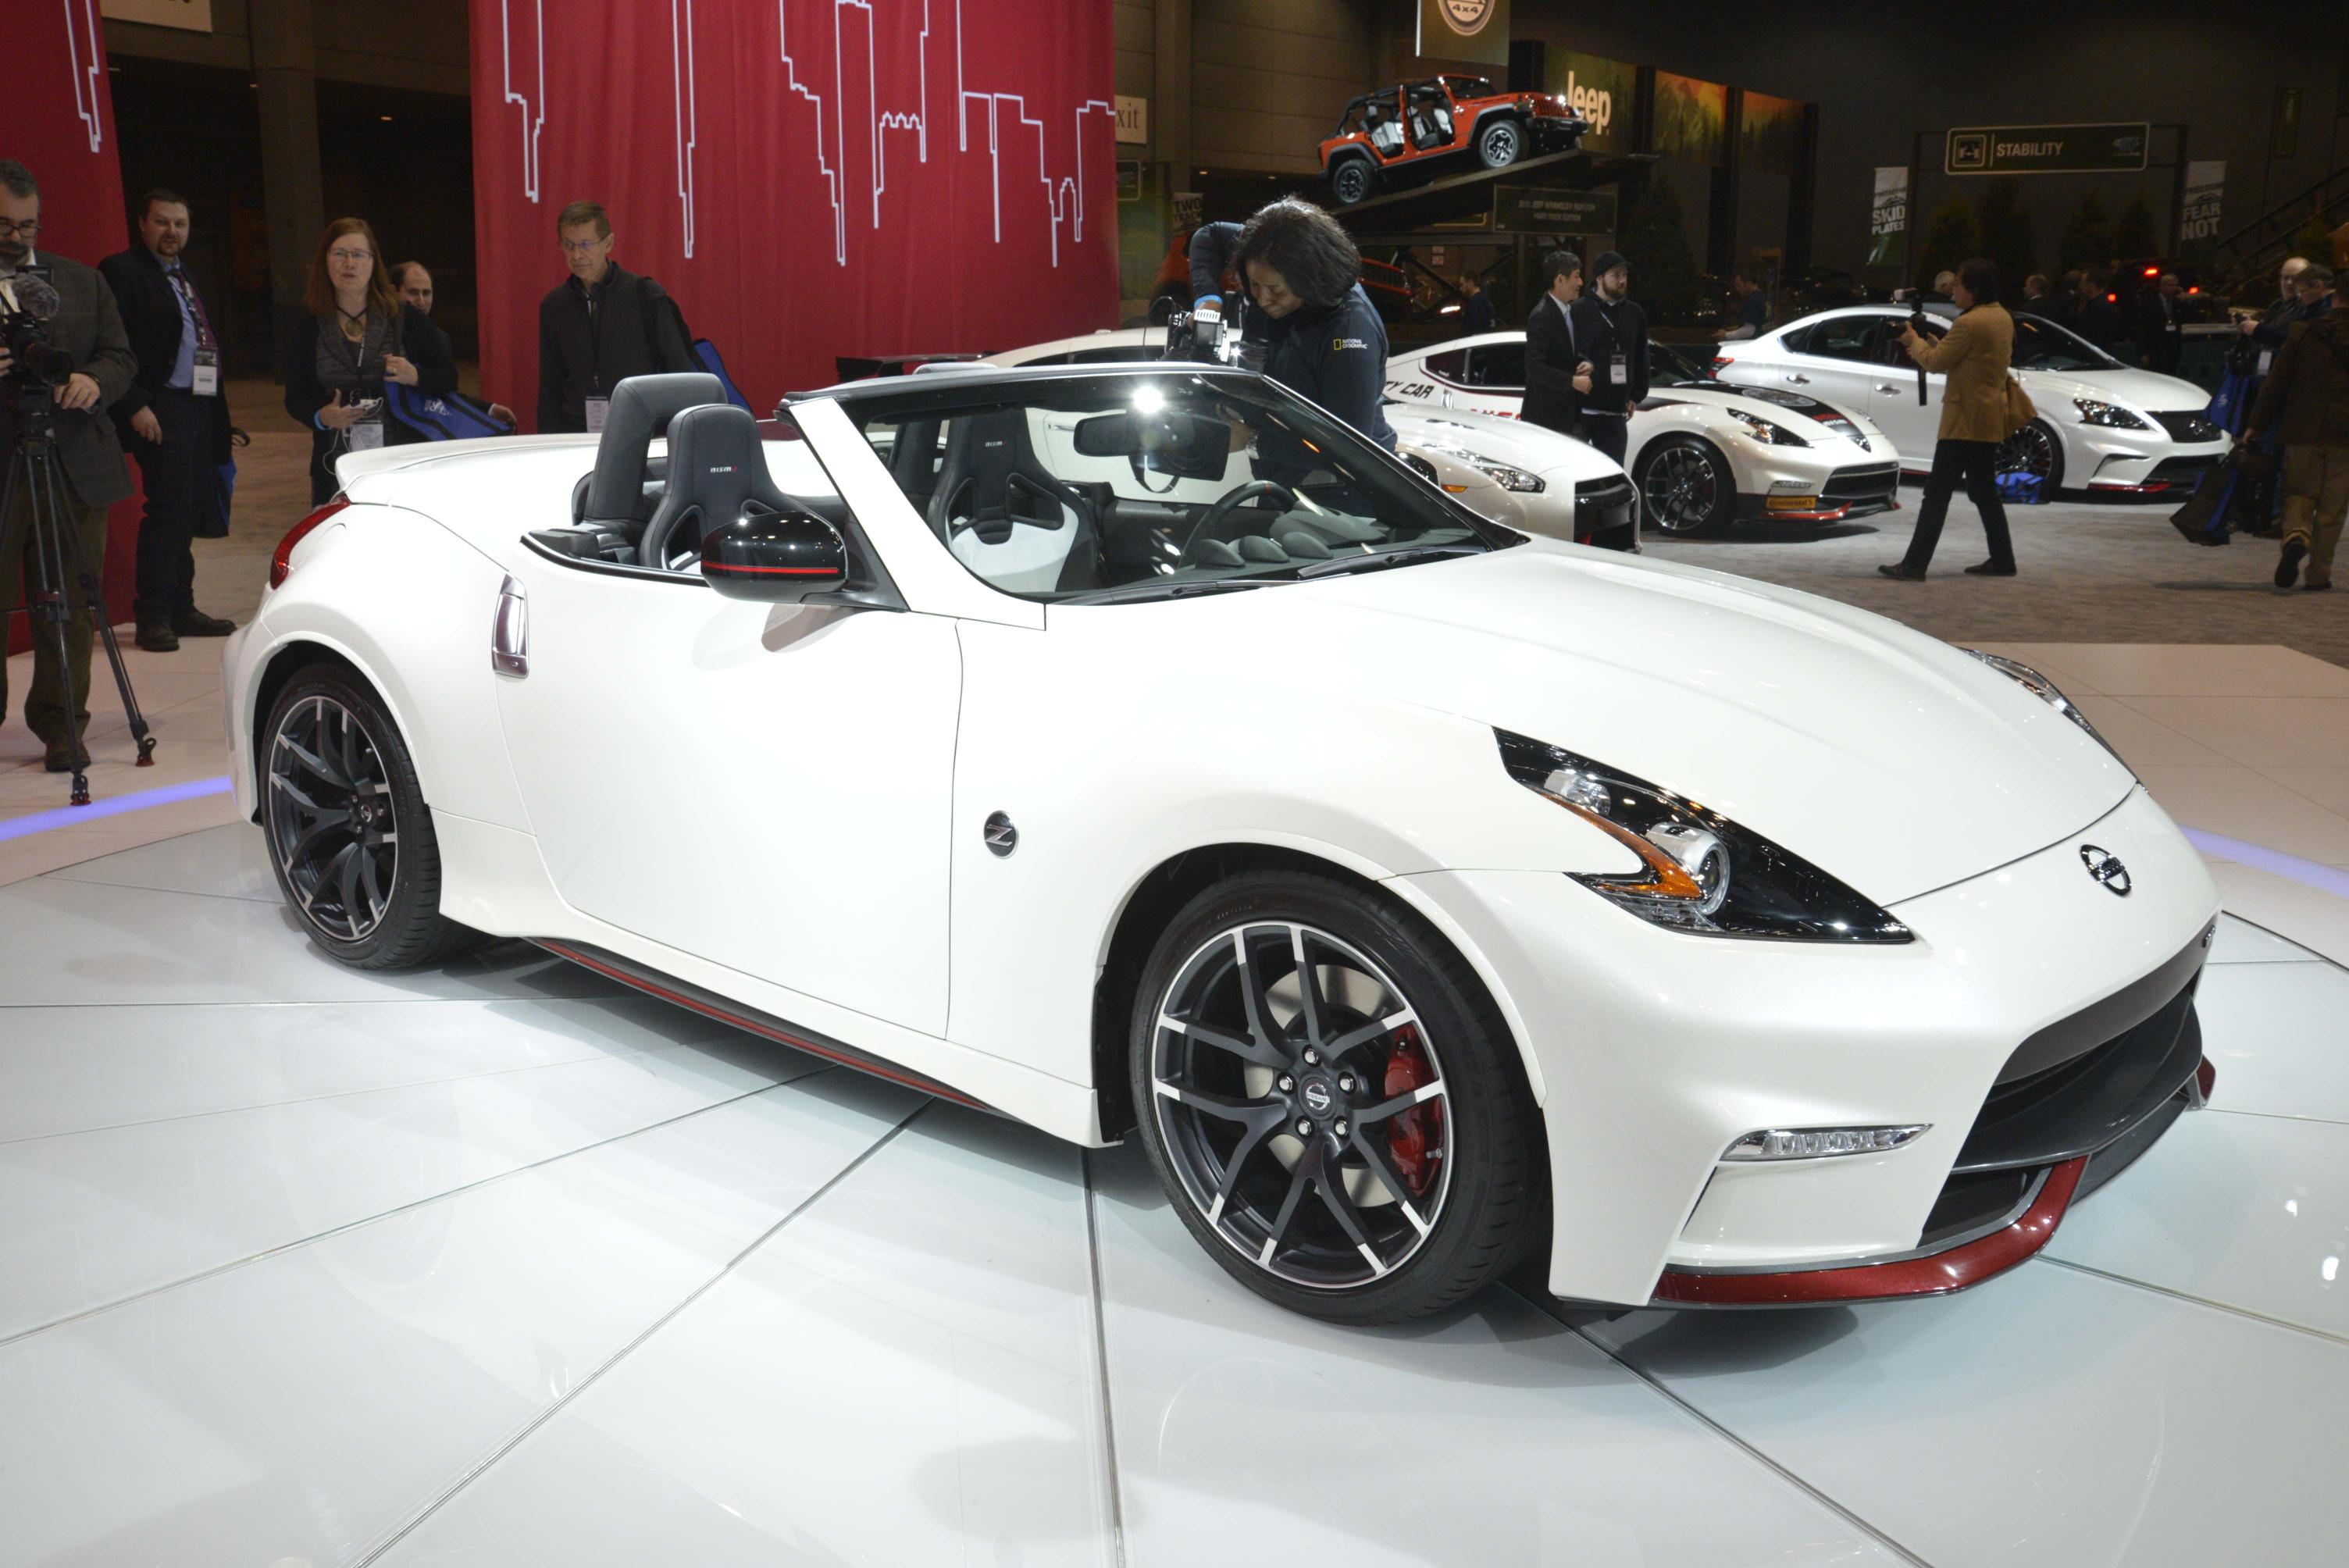 NISSAN 370Z NISMO ROADSTER CONCEPT MAKES WORLD DEBUT AT 2015 CHICAGO AUTO SHOW